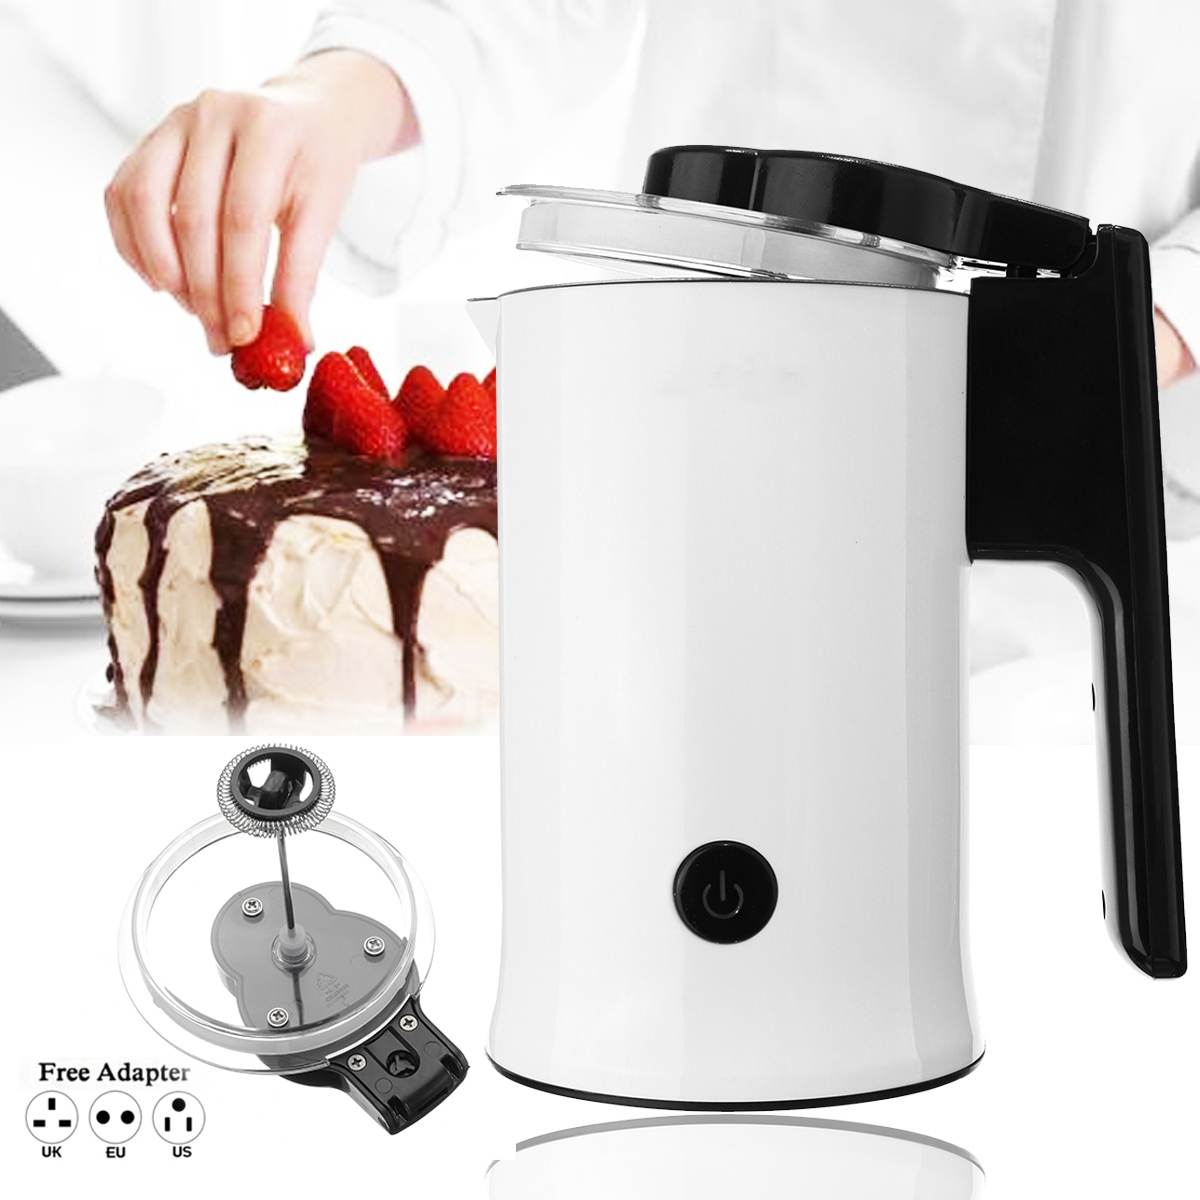 570-630W Automatic Milk Frother with Stainless Steel Container for Soft Foam Cappuccino Electric Coffee Machine Maker Hot/Cool 570-630W Automatic Milk Frother with Stainless Steel Container for Soft Foam Cappuccino Electric Coffee Machine Maker Hot/Cool